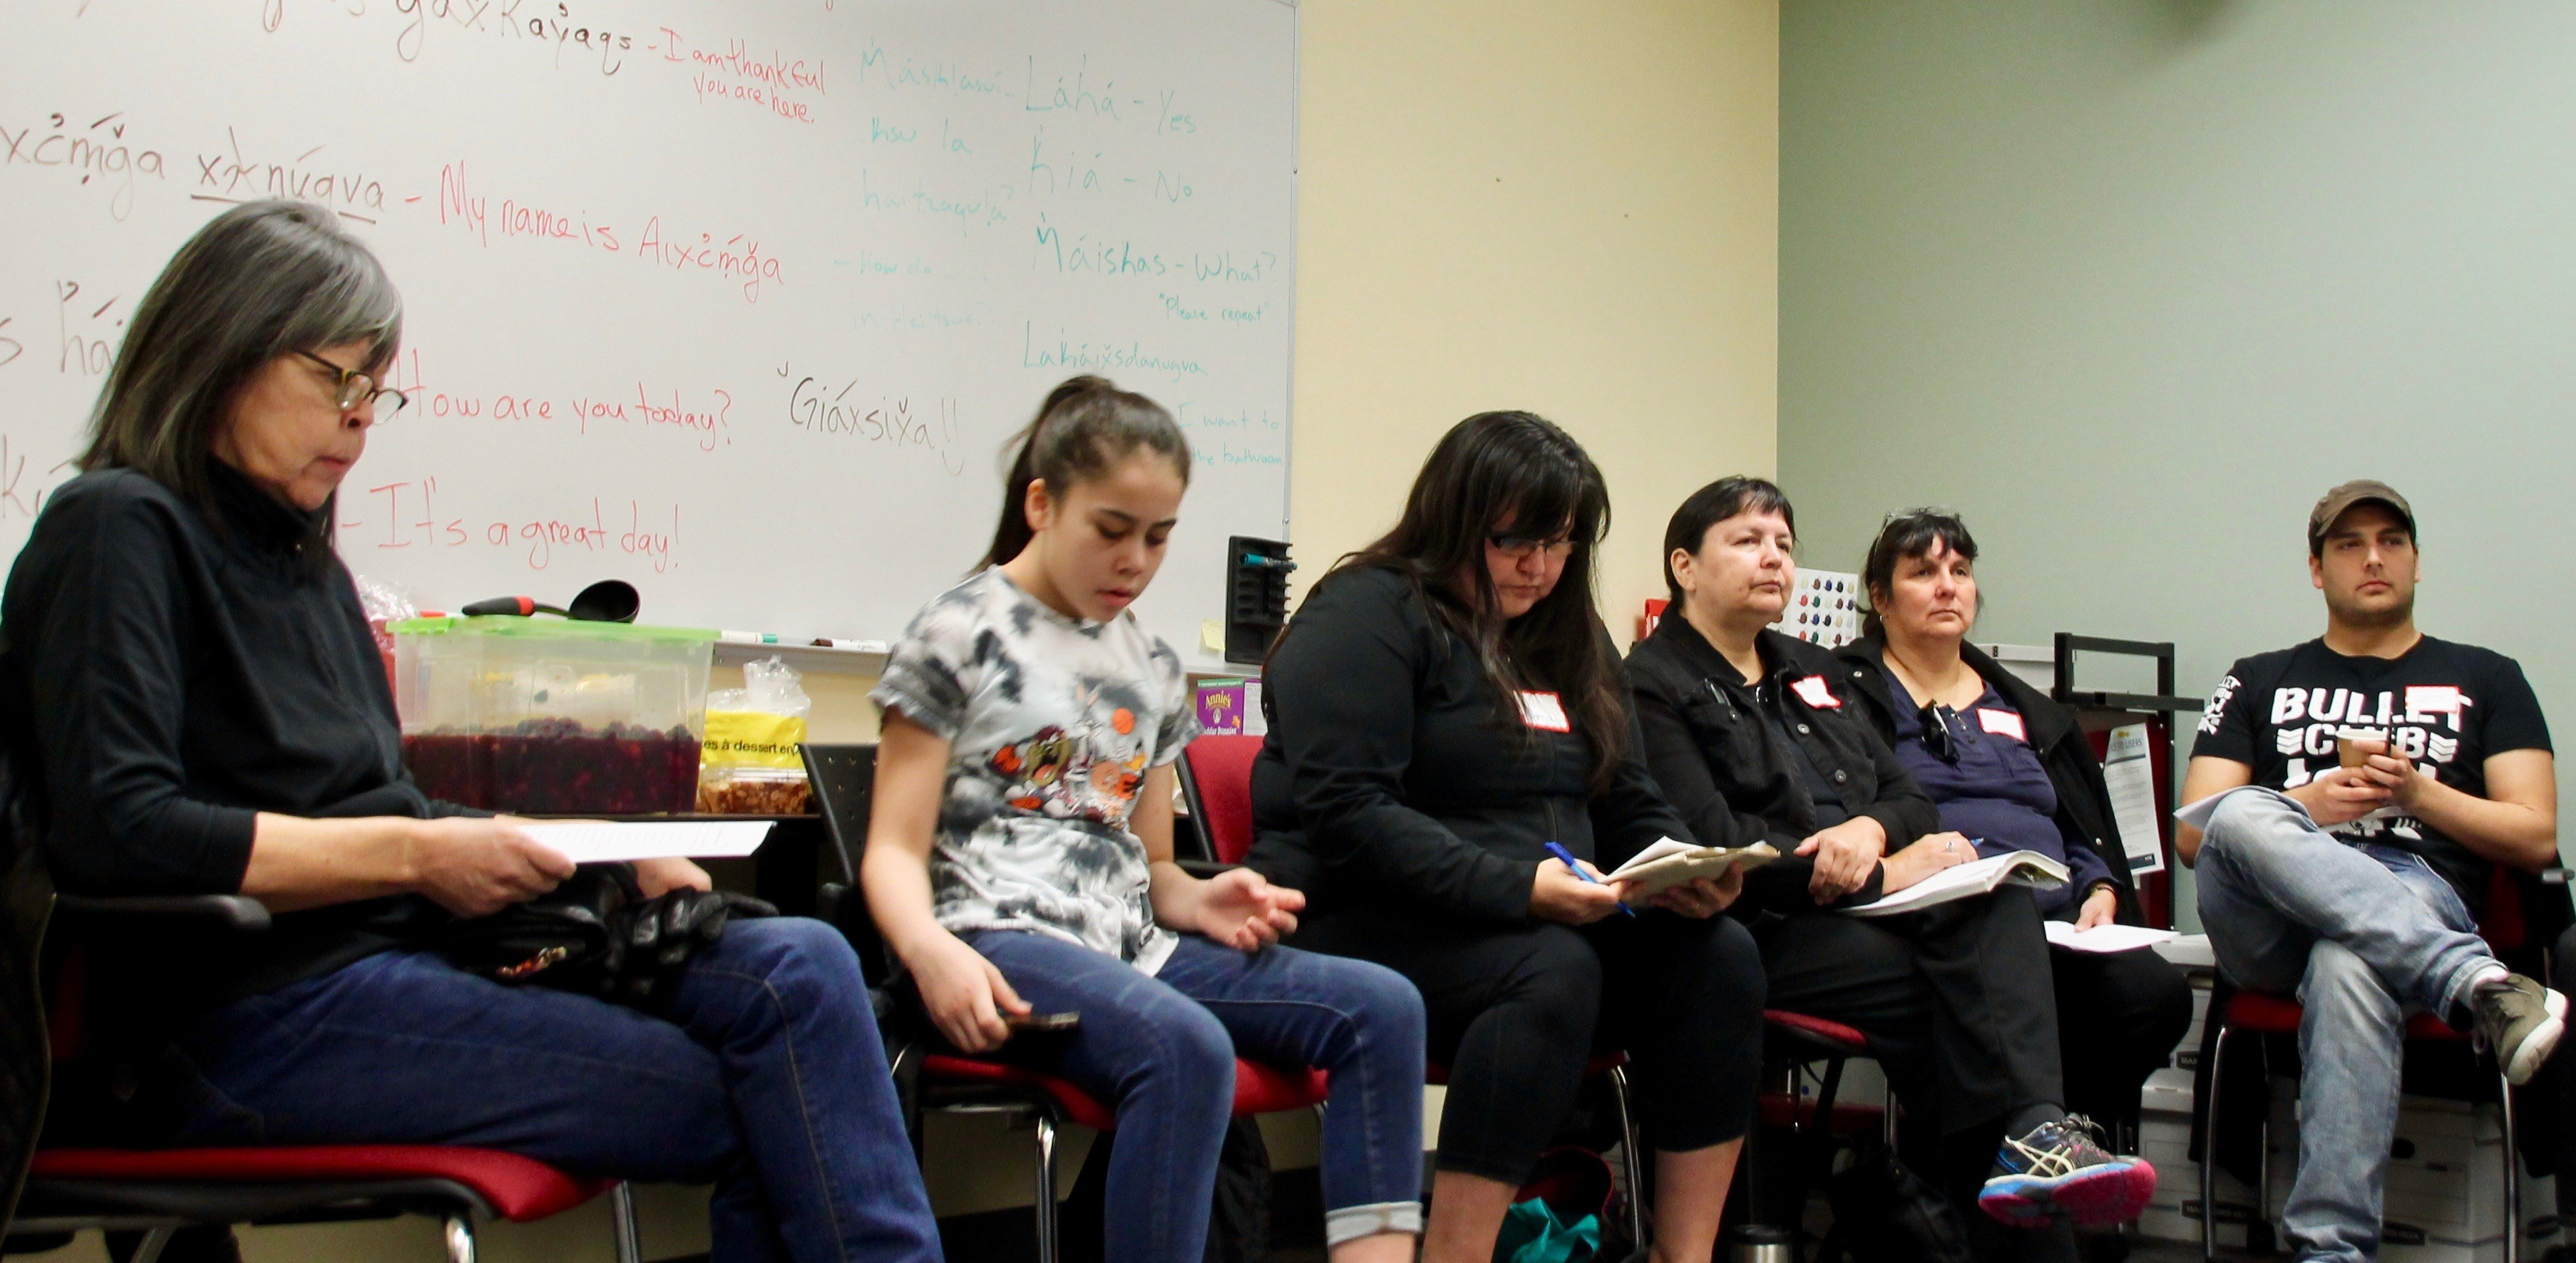 Wanda Christianson (far left) was one of 13 students in Vancouver's Hailhzaqvla class. (Rehmatullah Sheikh/Vee Wells)